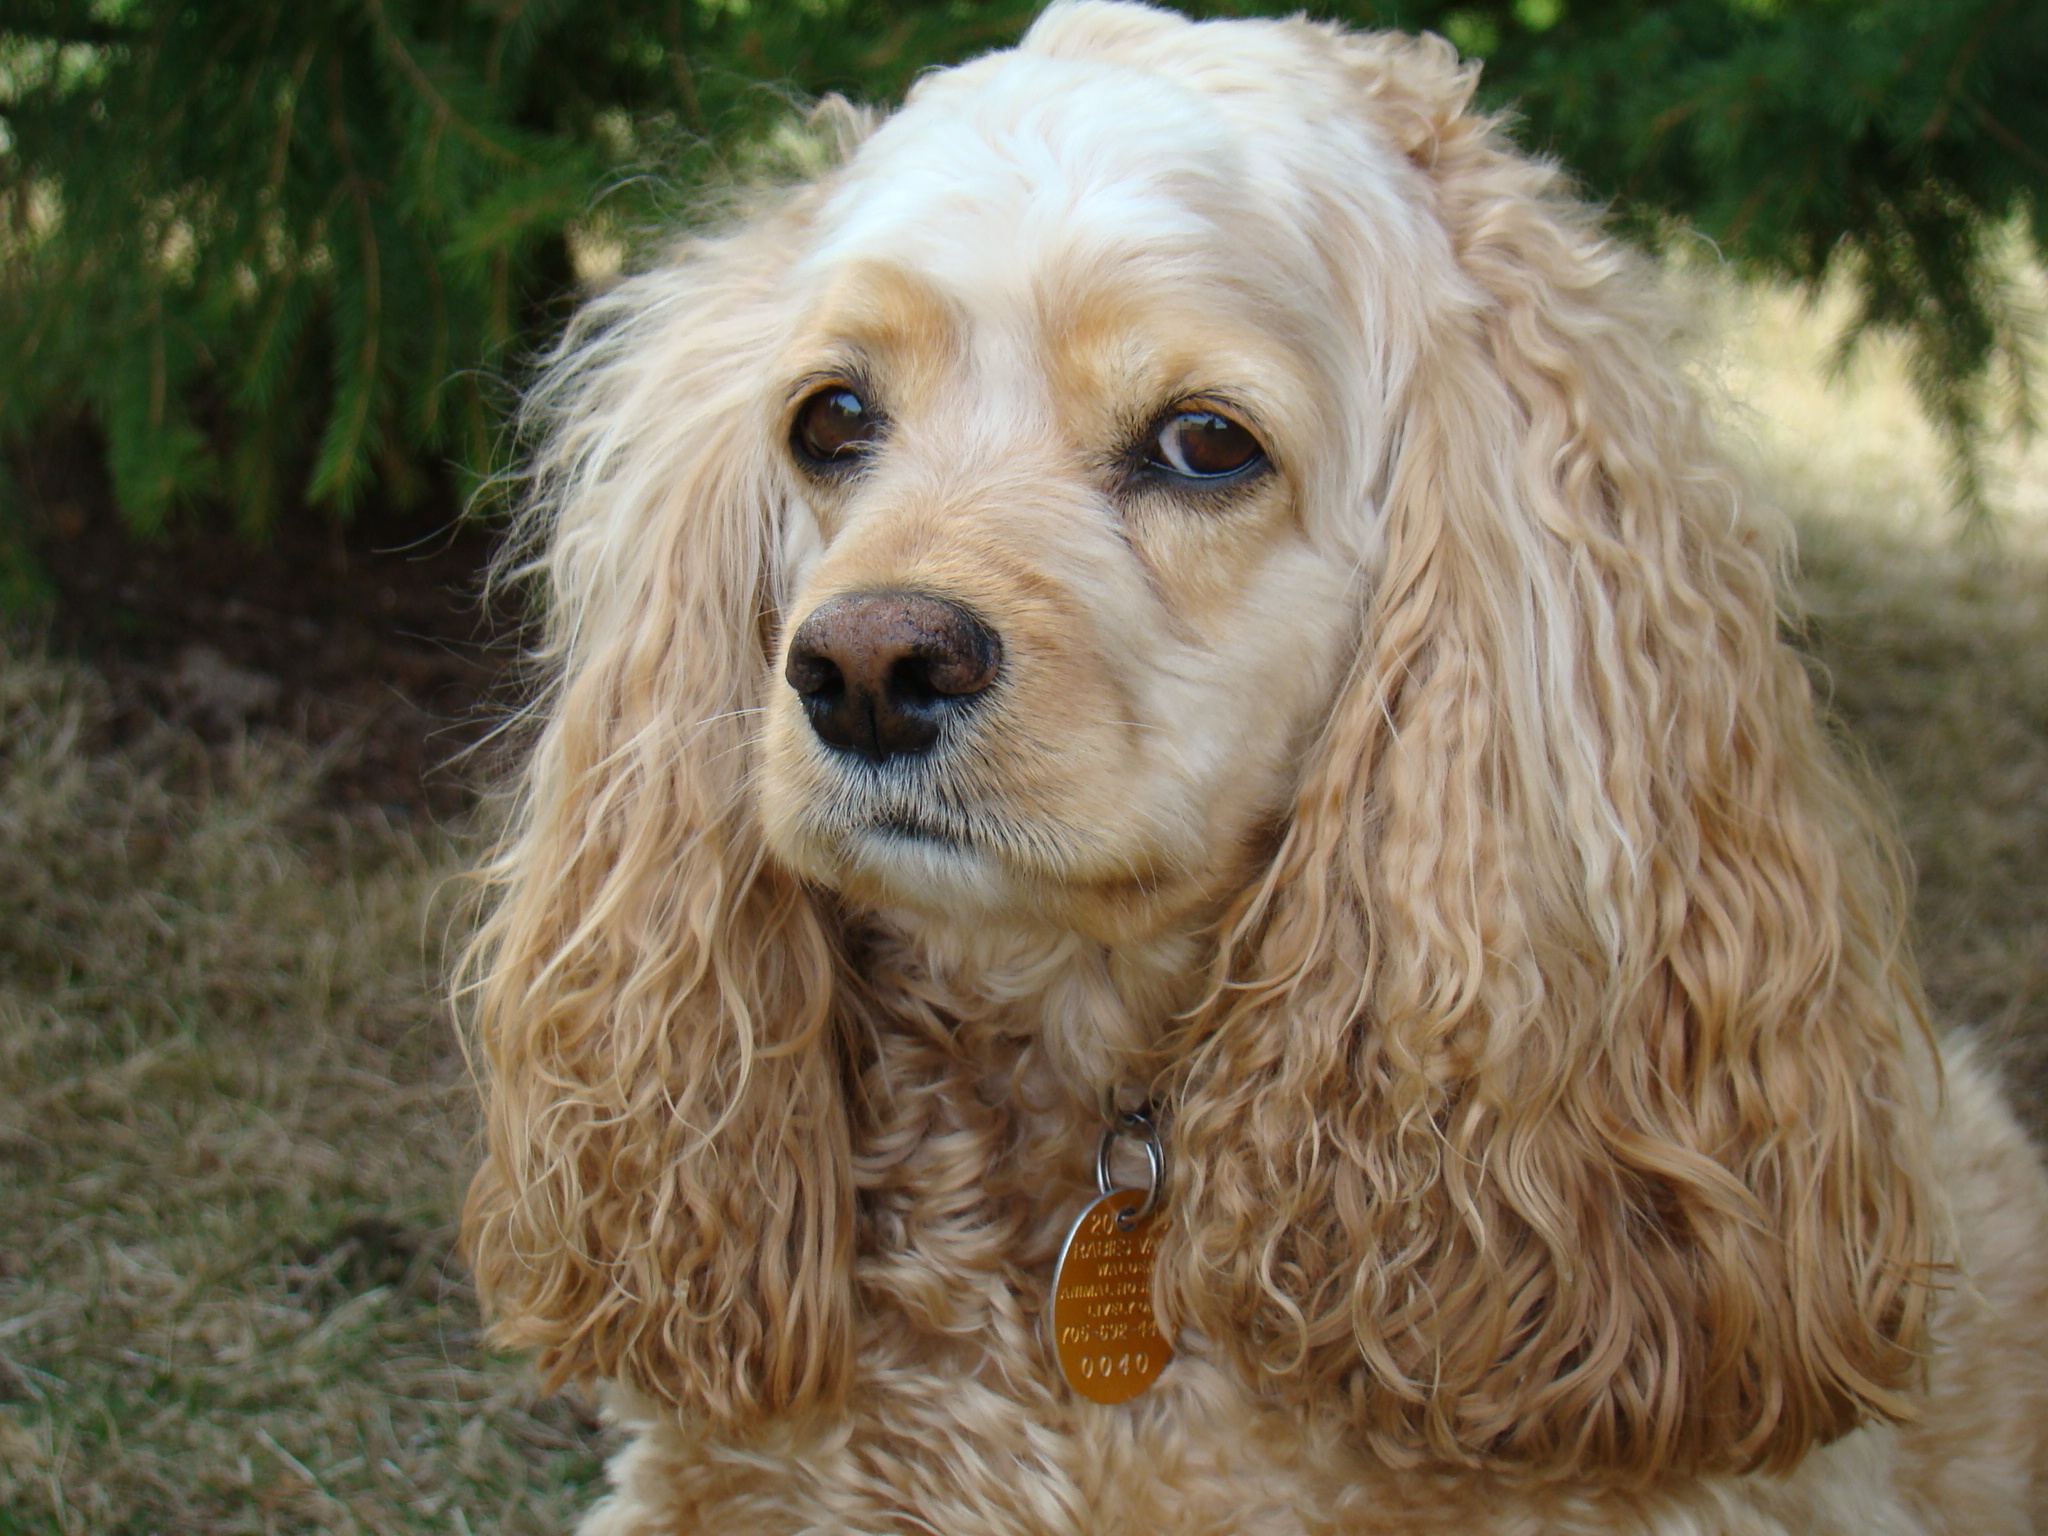 Cute Lemon Wallpaper 20 Most Beautiful Cocker Spaniel Dog Pictures And Images